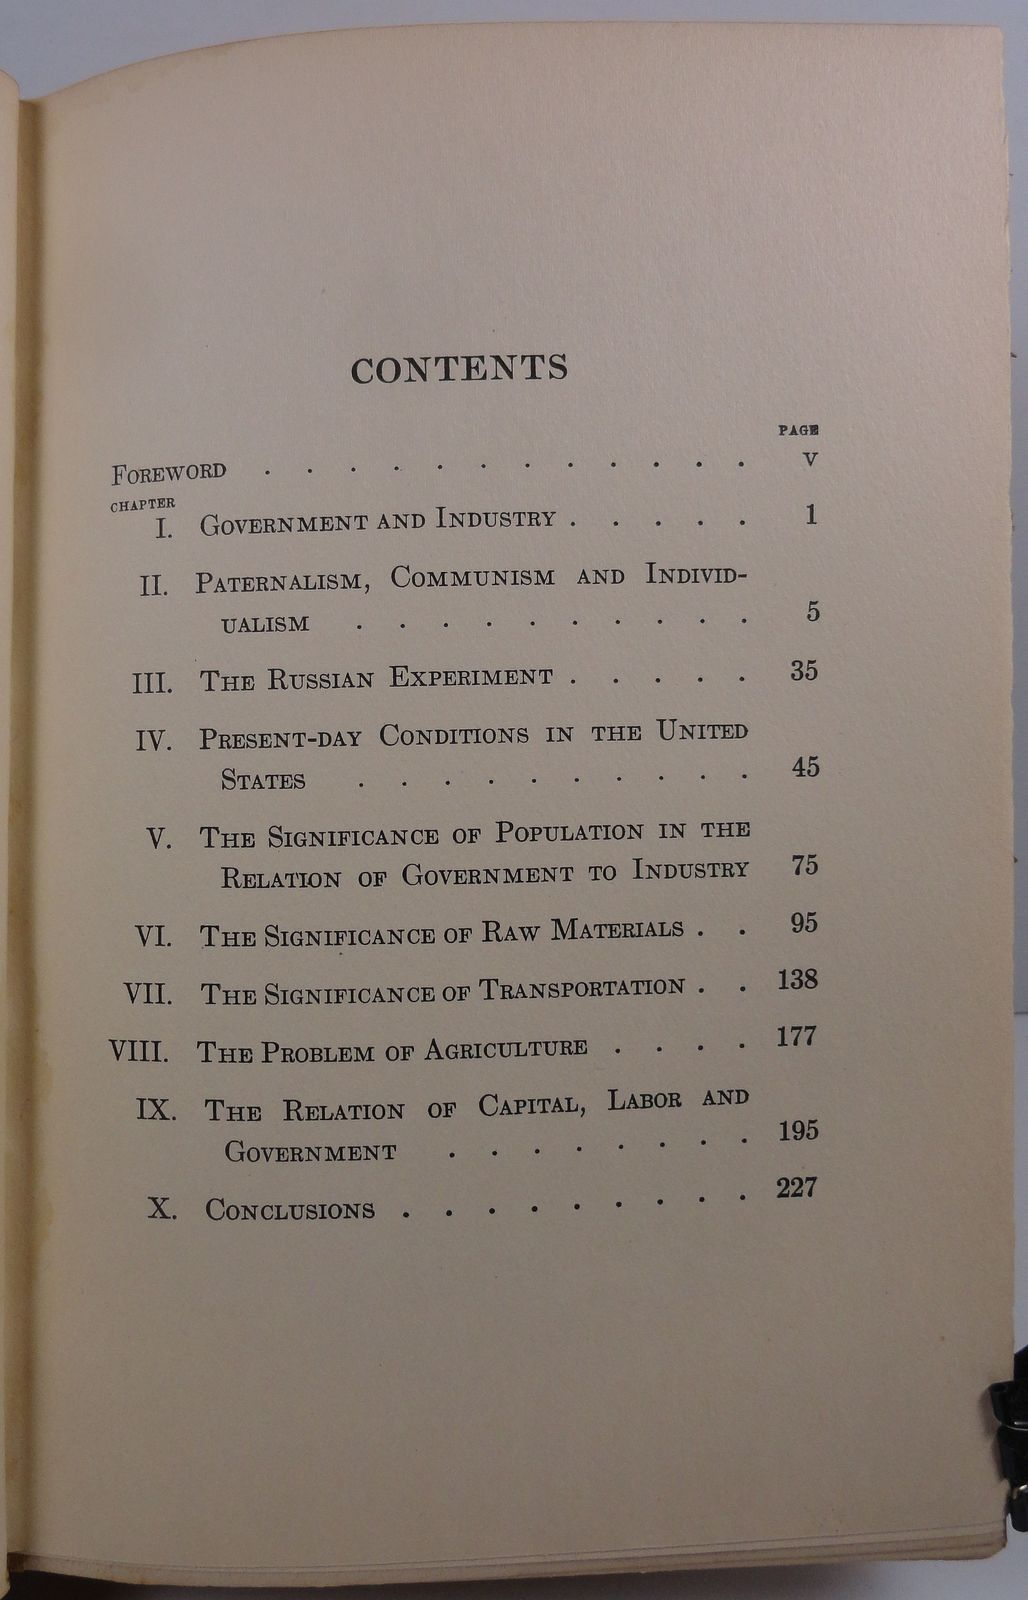 The Relation of Government to Industry by Mark L. Requa 1925